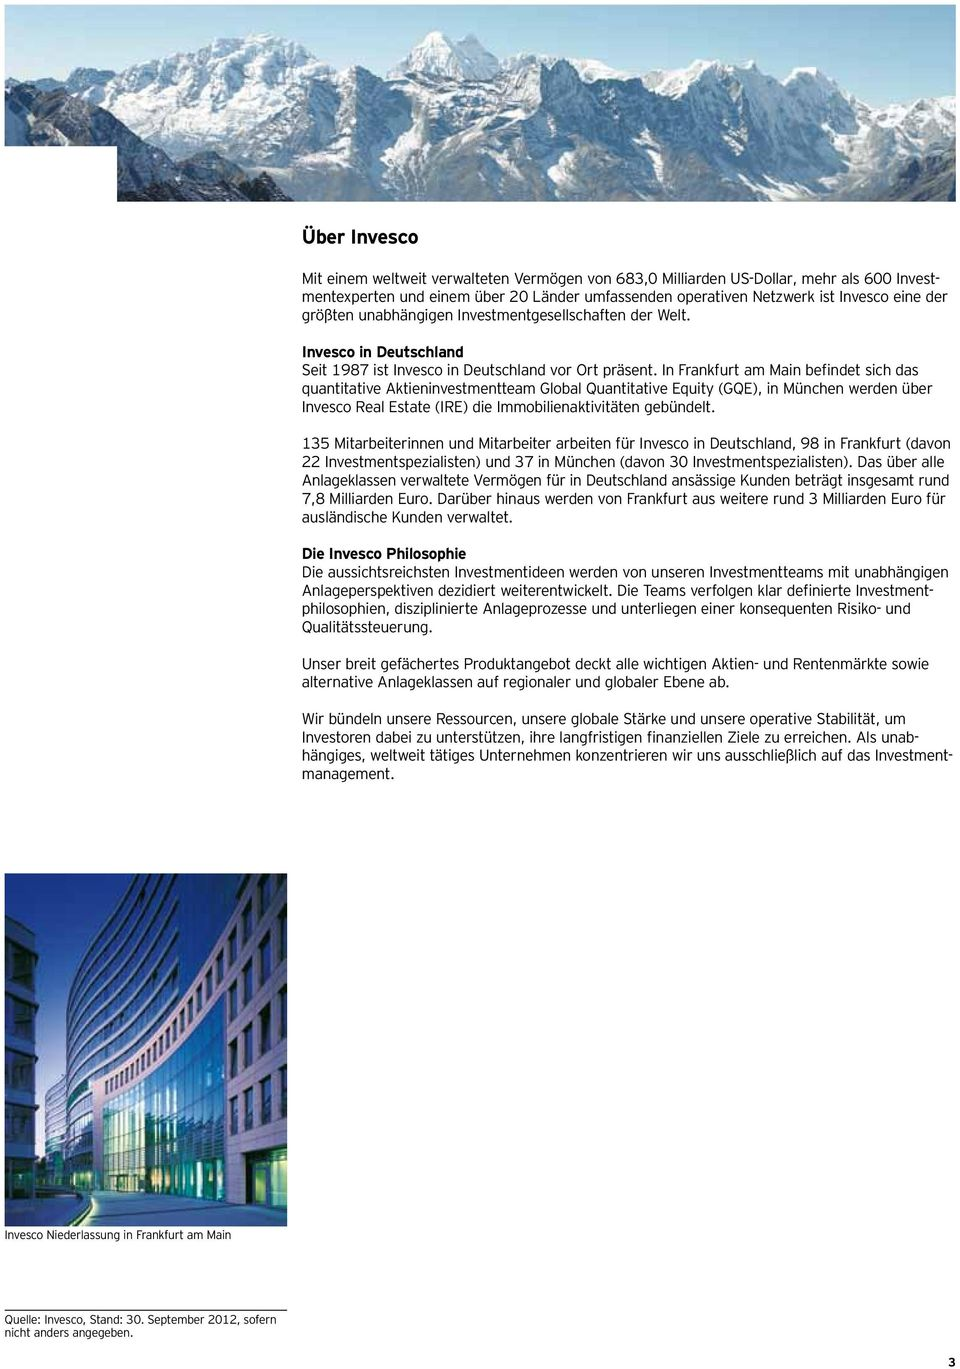 In Frankfurt am Main befindet sich das quantitative Aktieninvestmentteam Global Quantitative Equity (GQE), in München werden über Invesco Real Estate (IRE) die Immobilienaktivitäten gebündelt.